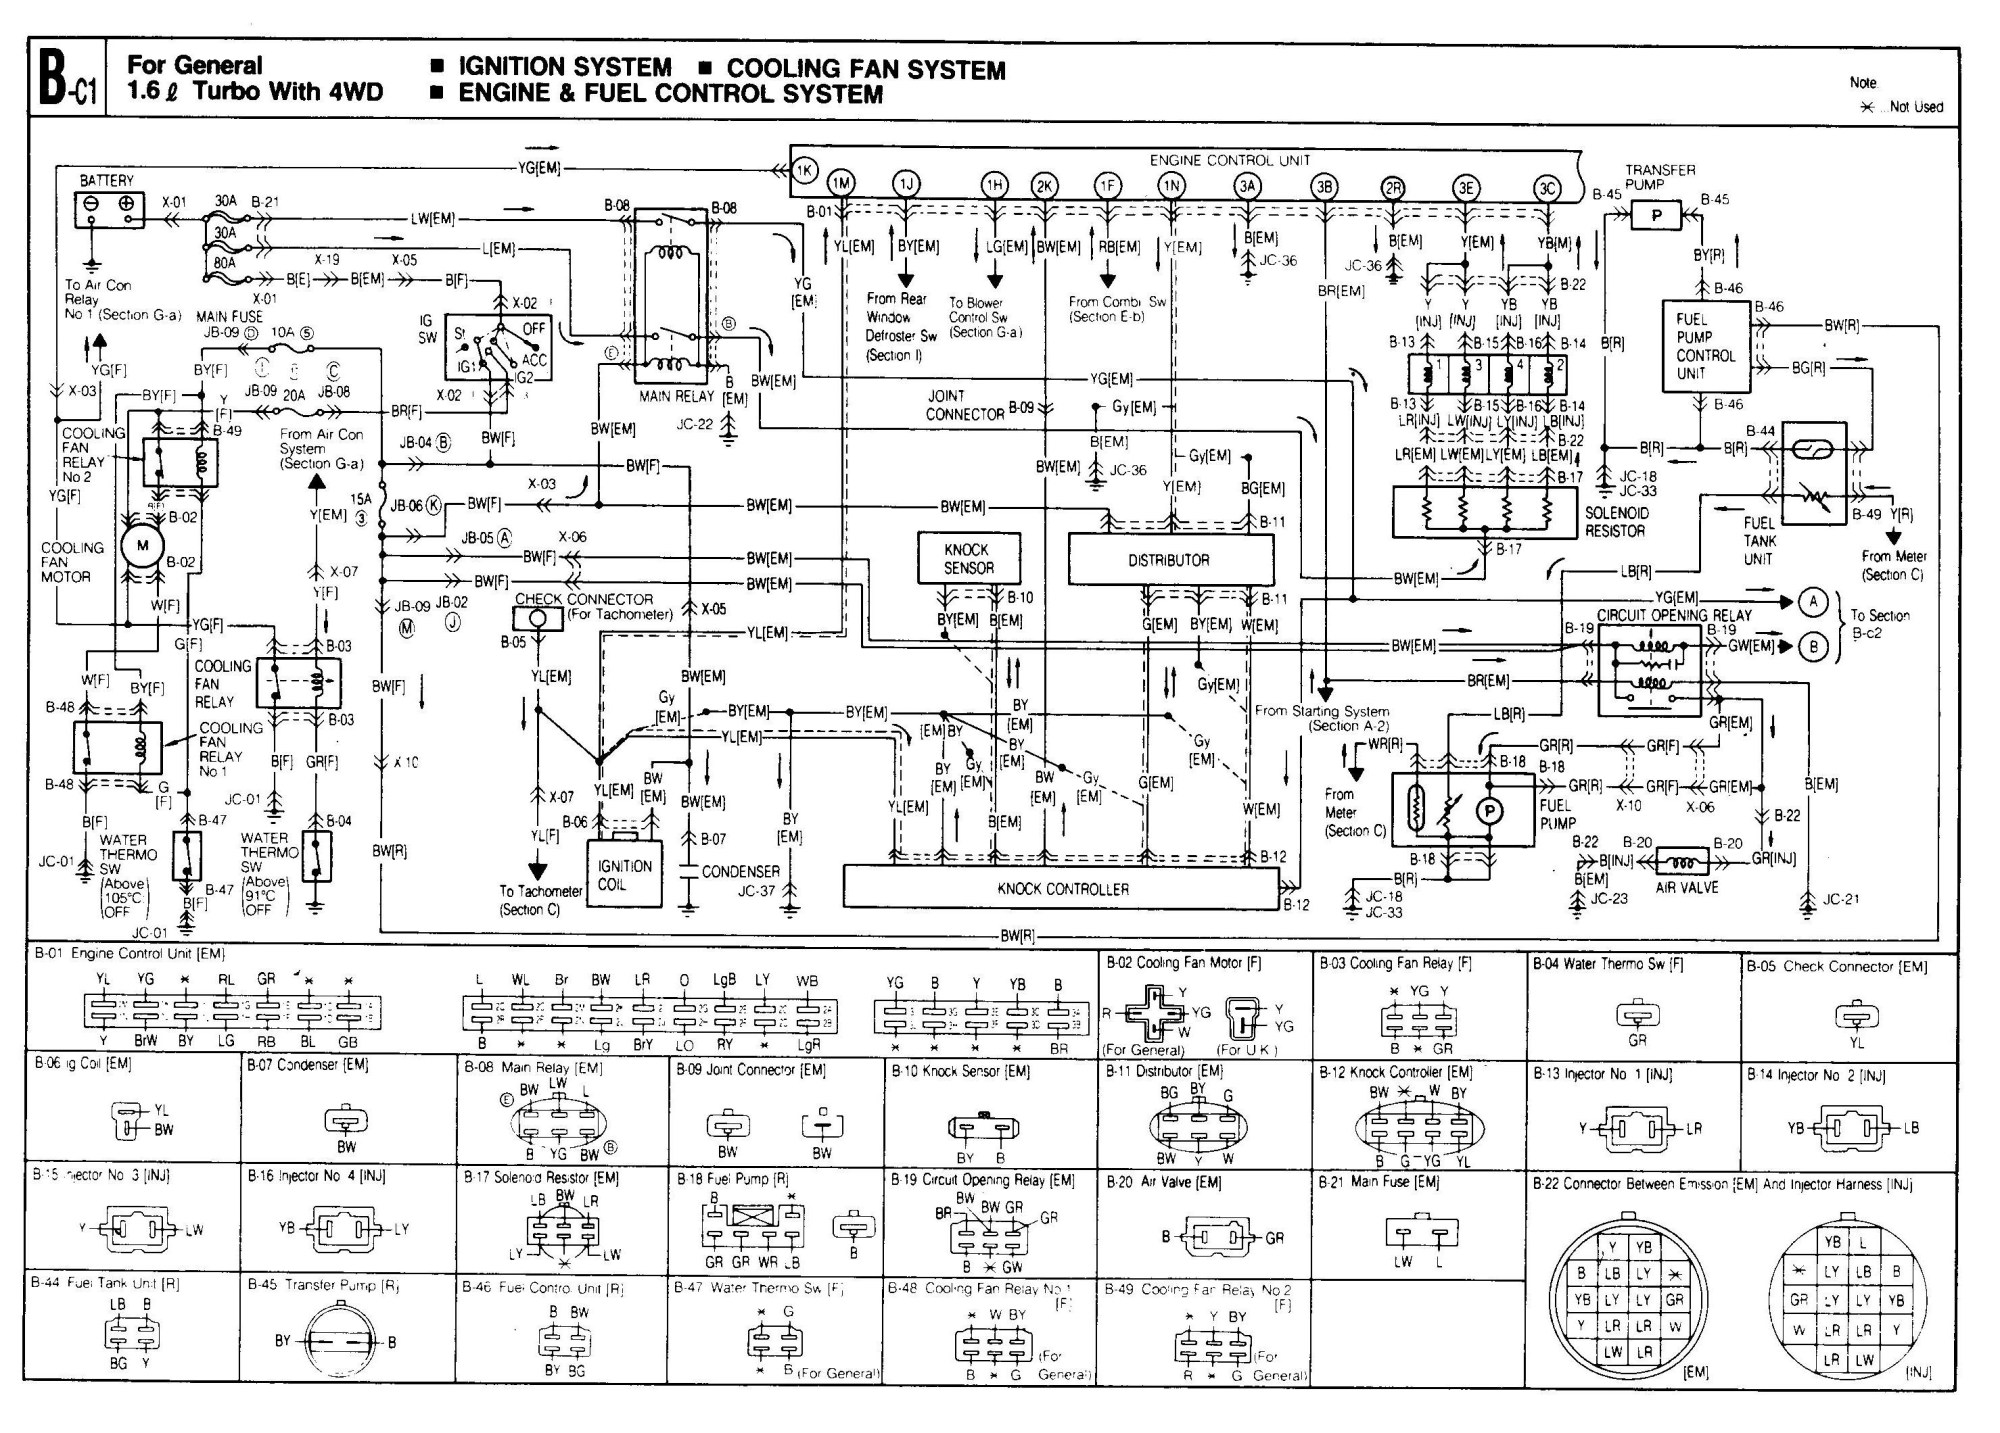 hight resolution of 1986 mazda b2000 engine diagram 1989 mazda 323 wiring diagram wiring rh detoxicrecenze com 1989 mazda b2200 engine diagram 1988 mazda b2200 vacuum diagram